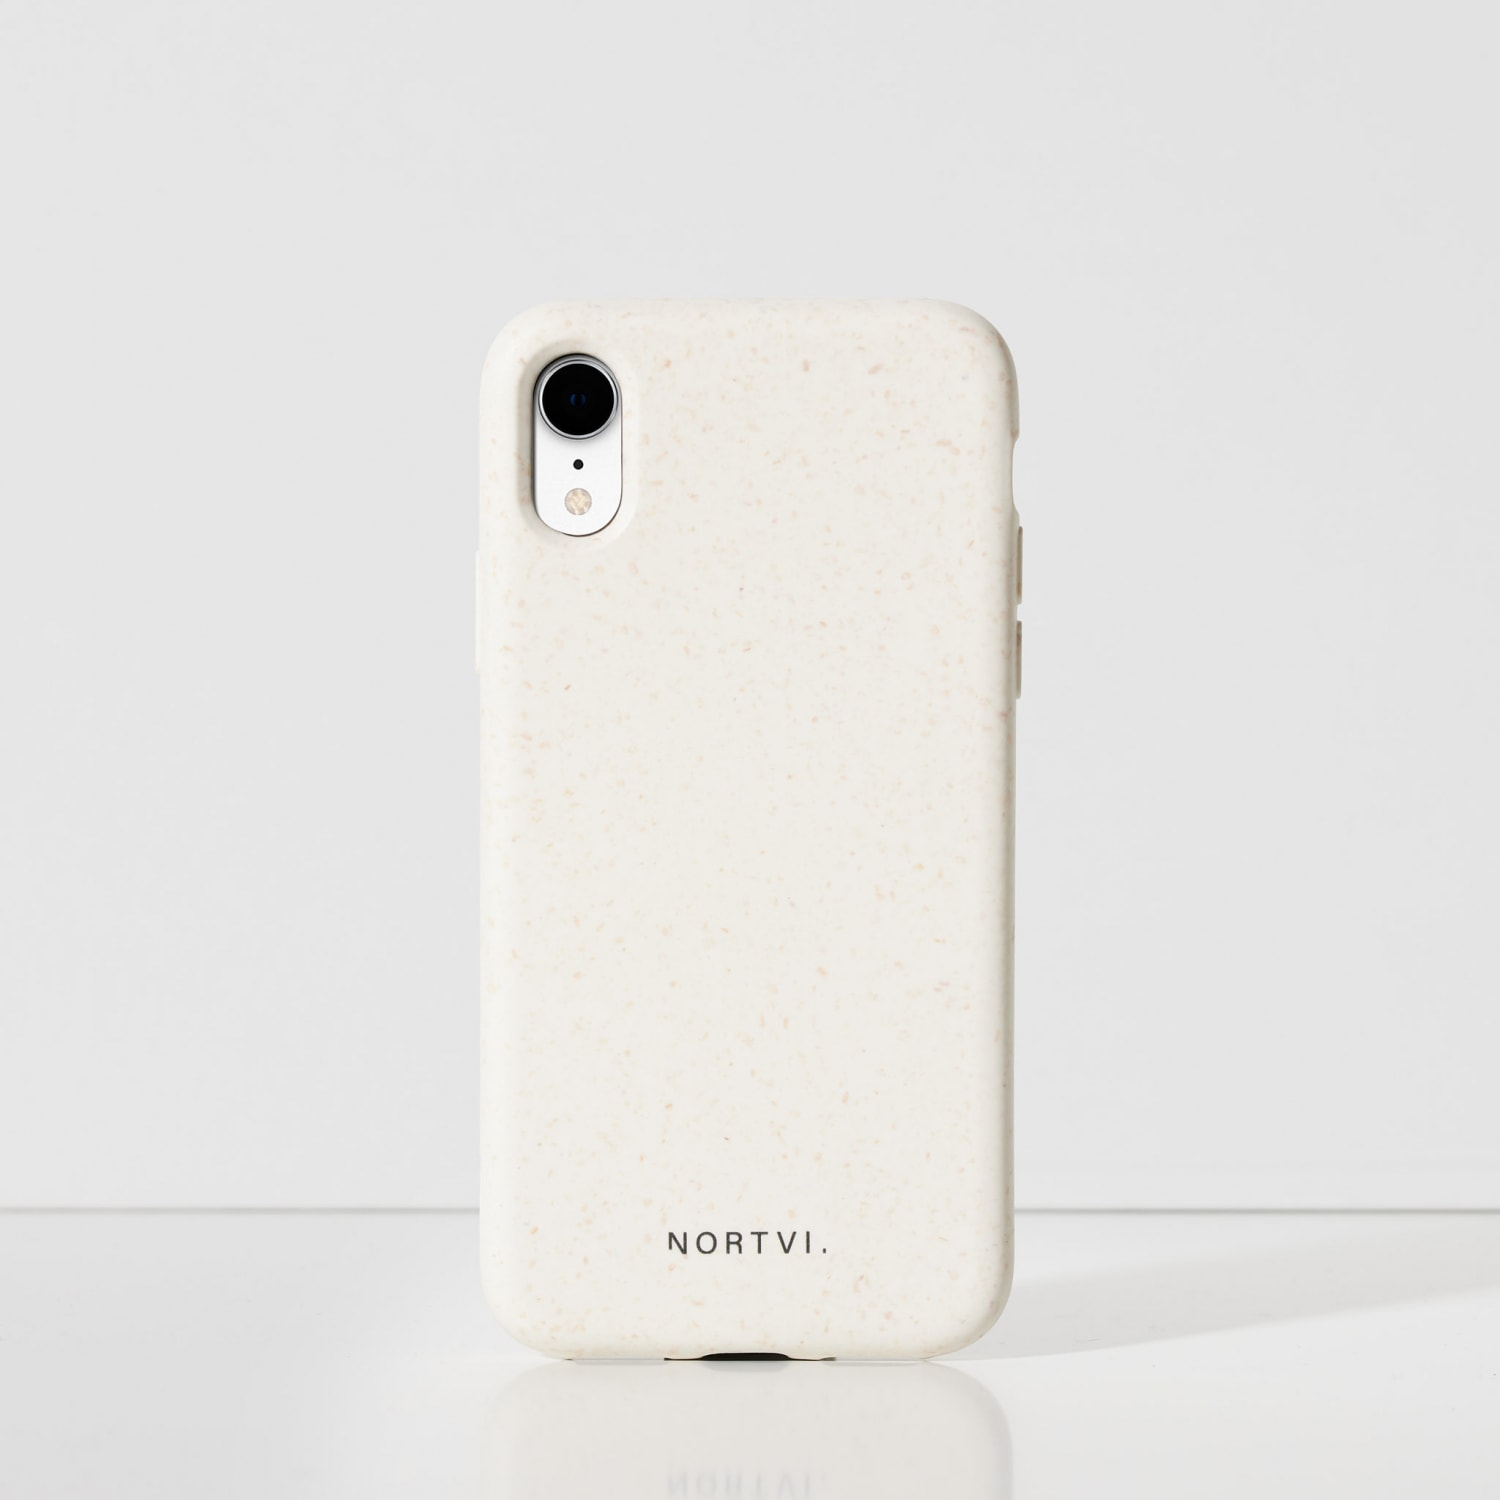 Iphone XR white wit hoes case